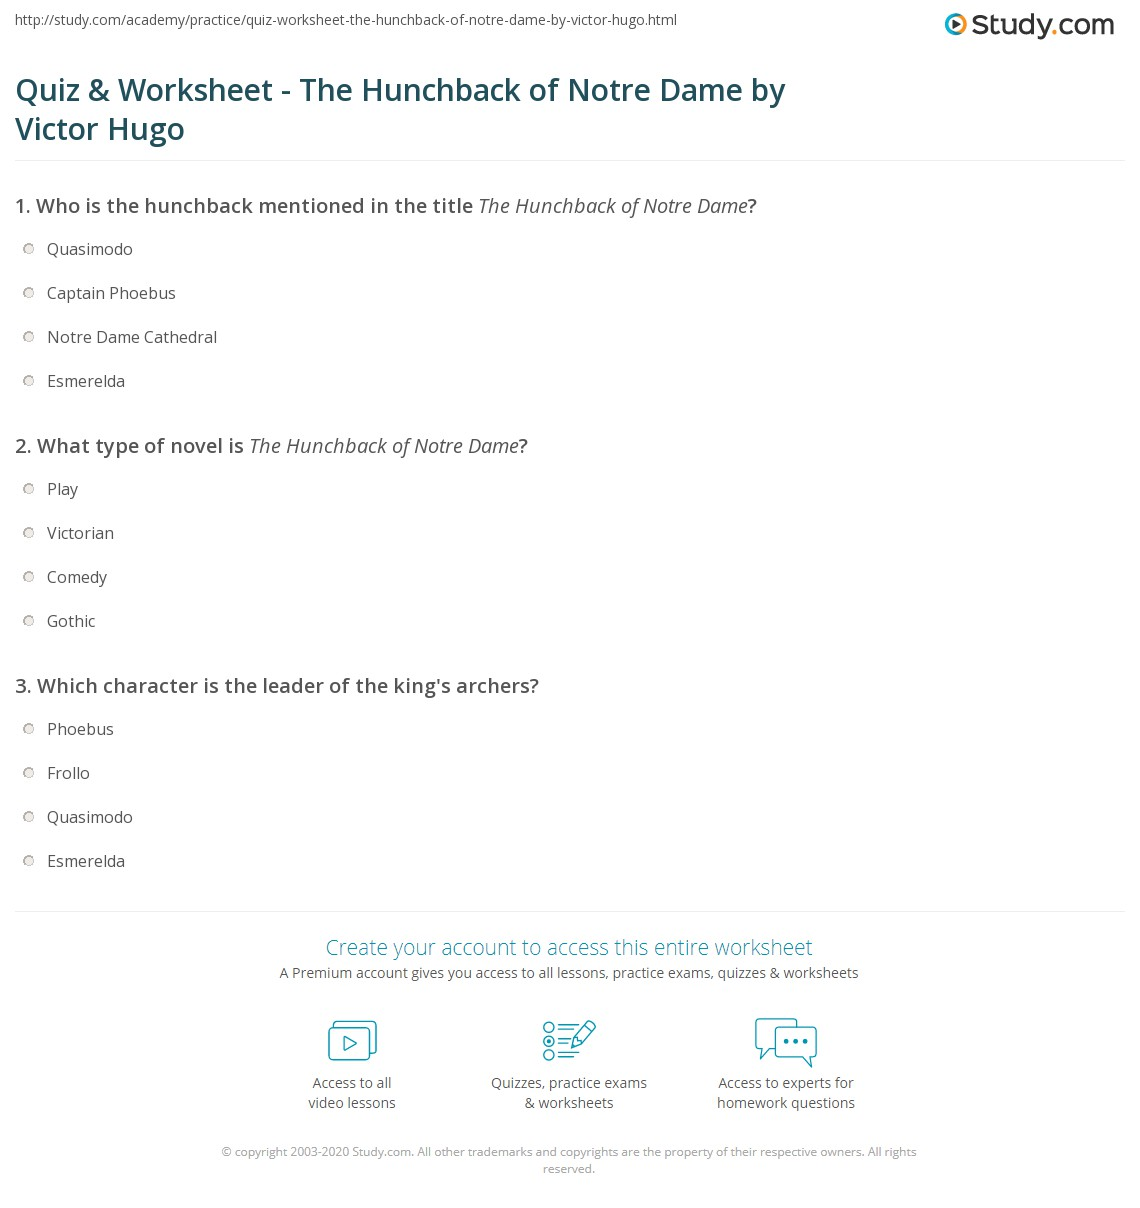 quiz worksheet the hunchback of notre dame by victor hugo print the hunchback of notre dame summary characters worksheet